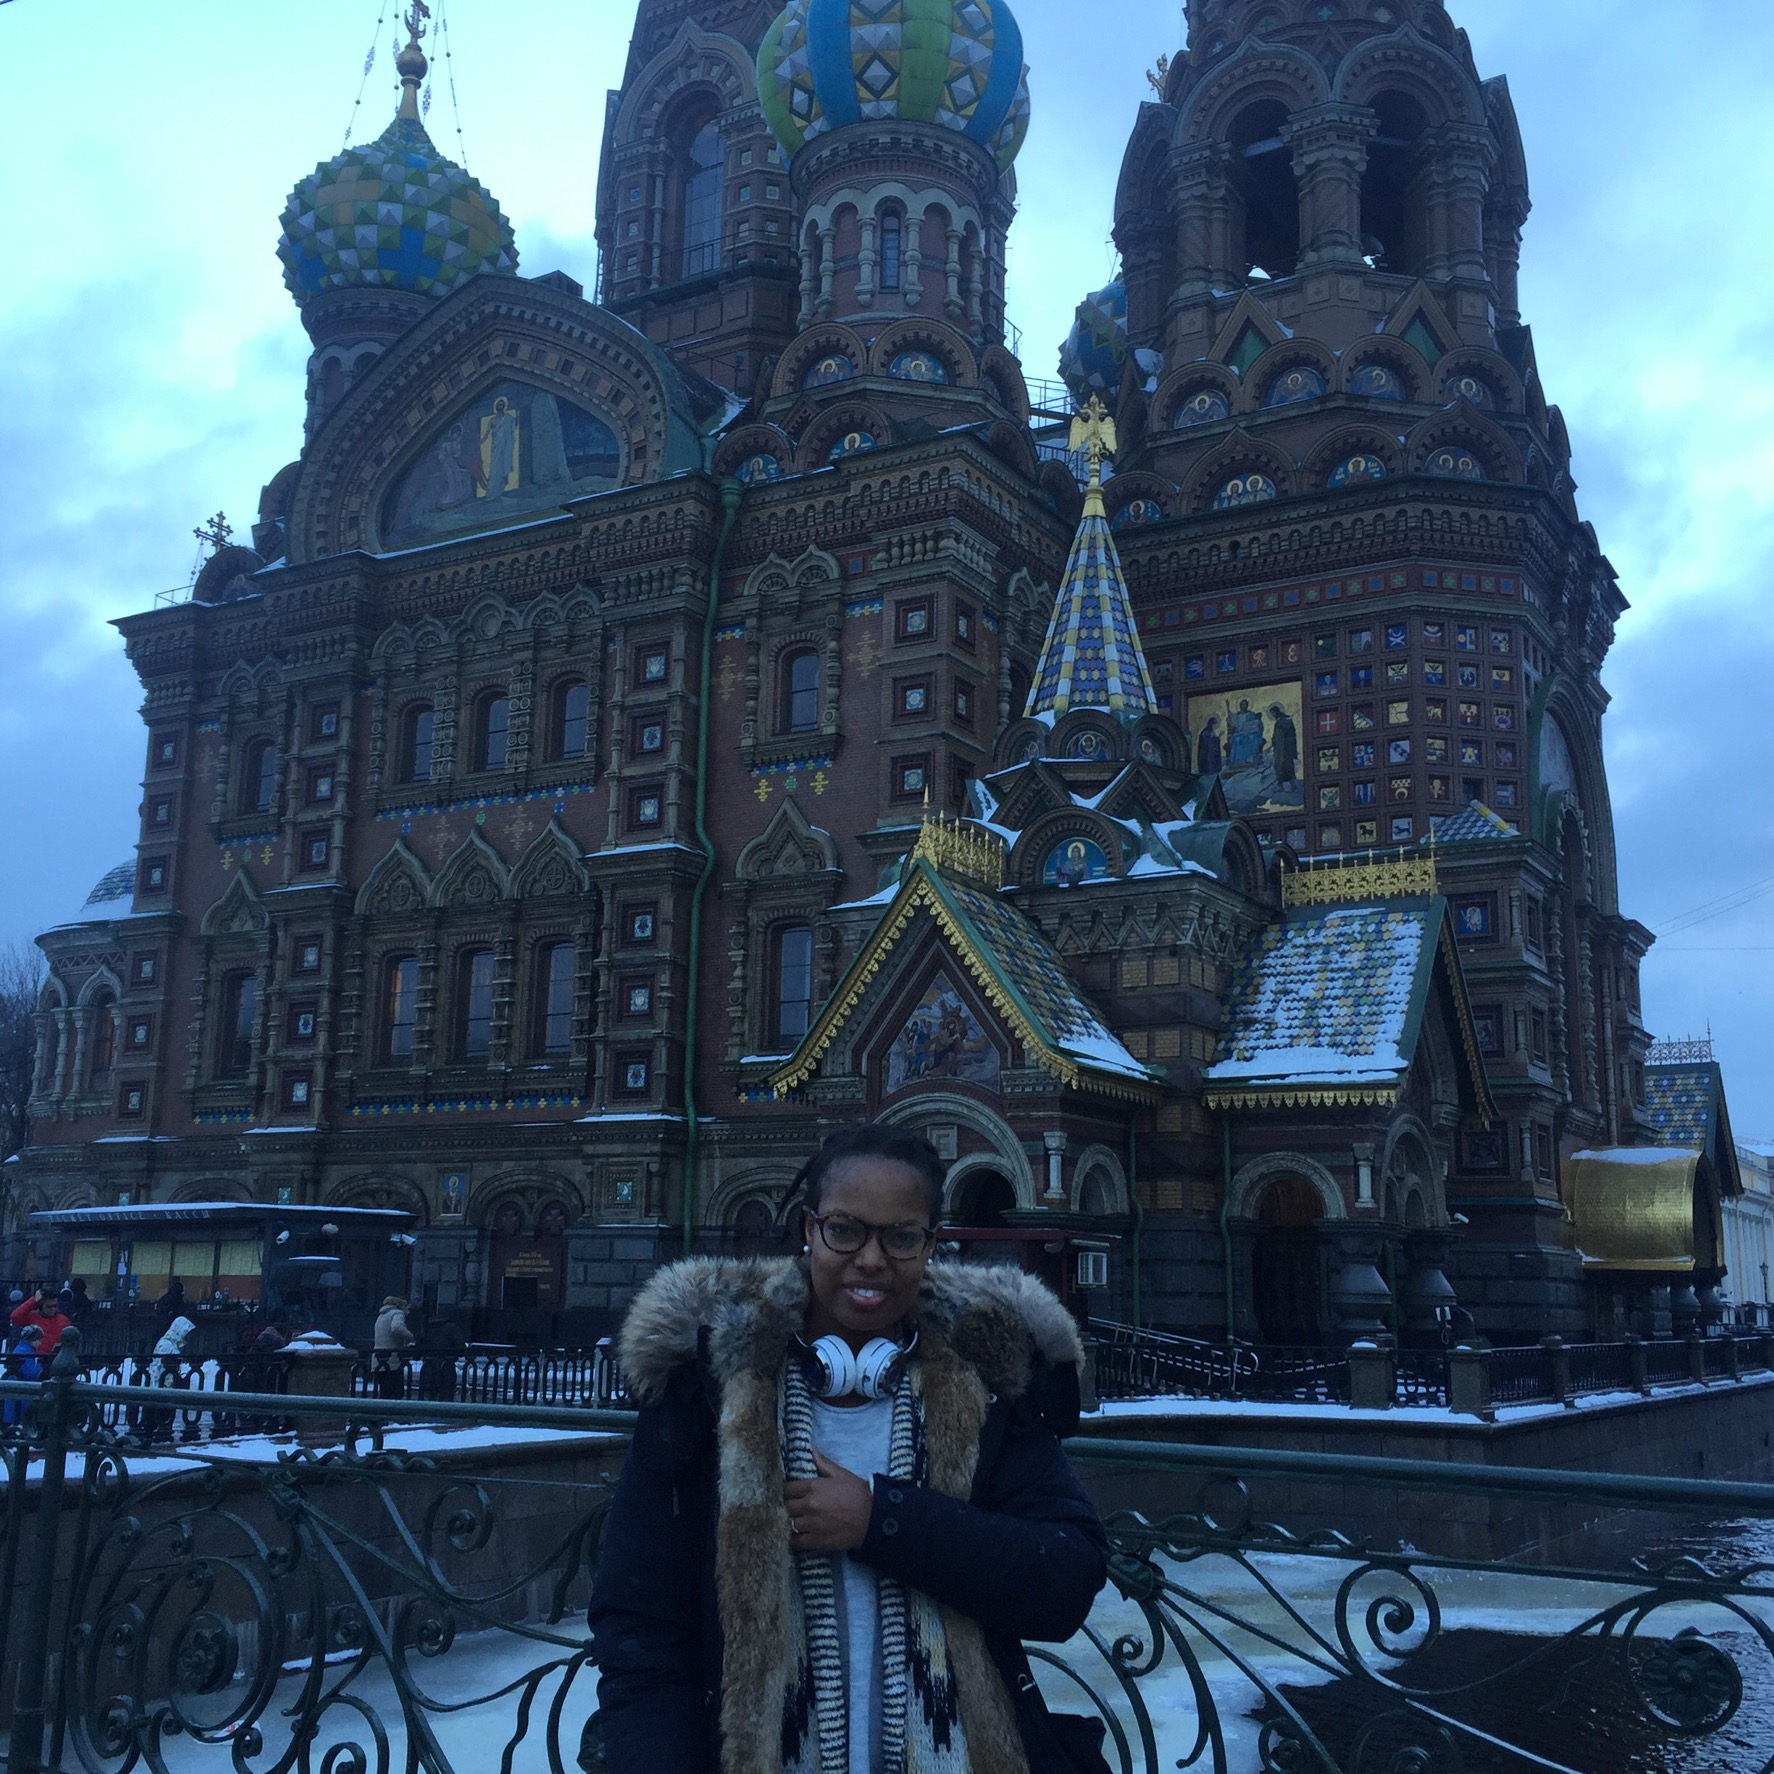 Standing in front of one of St Petersburg main churches...